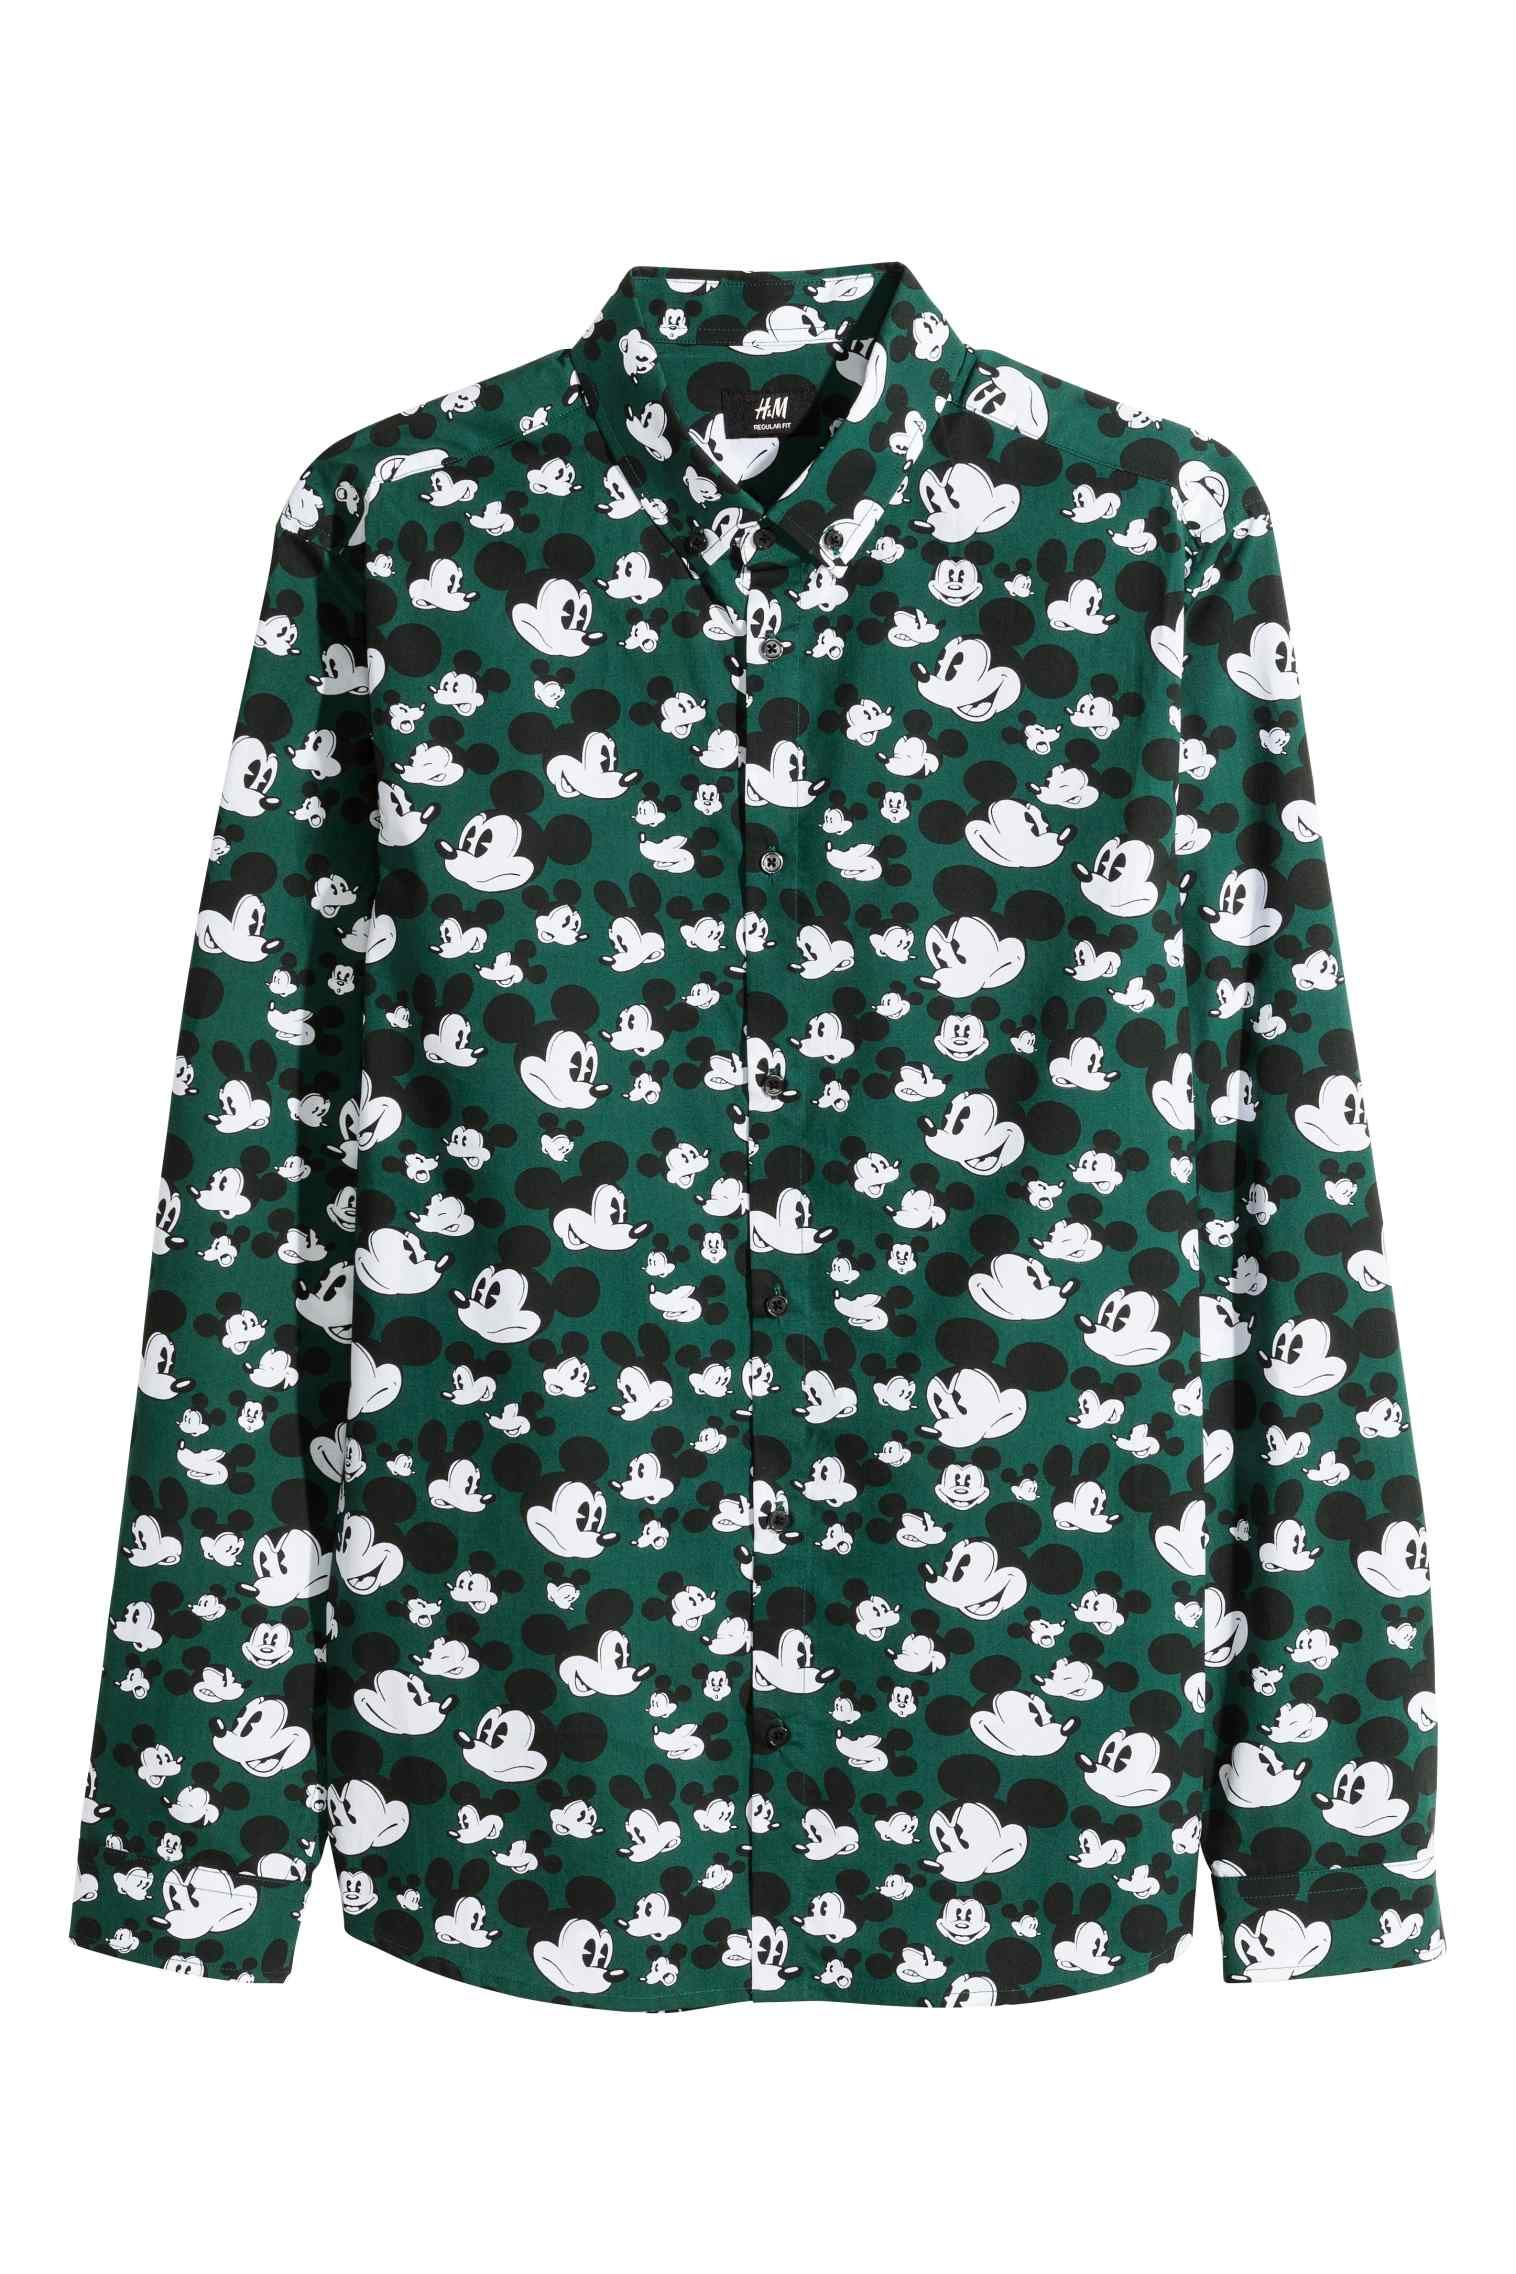 e40f57ec71 Camisa verde Mickey Mouse H M